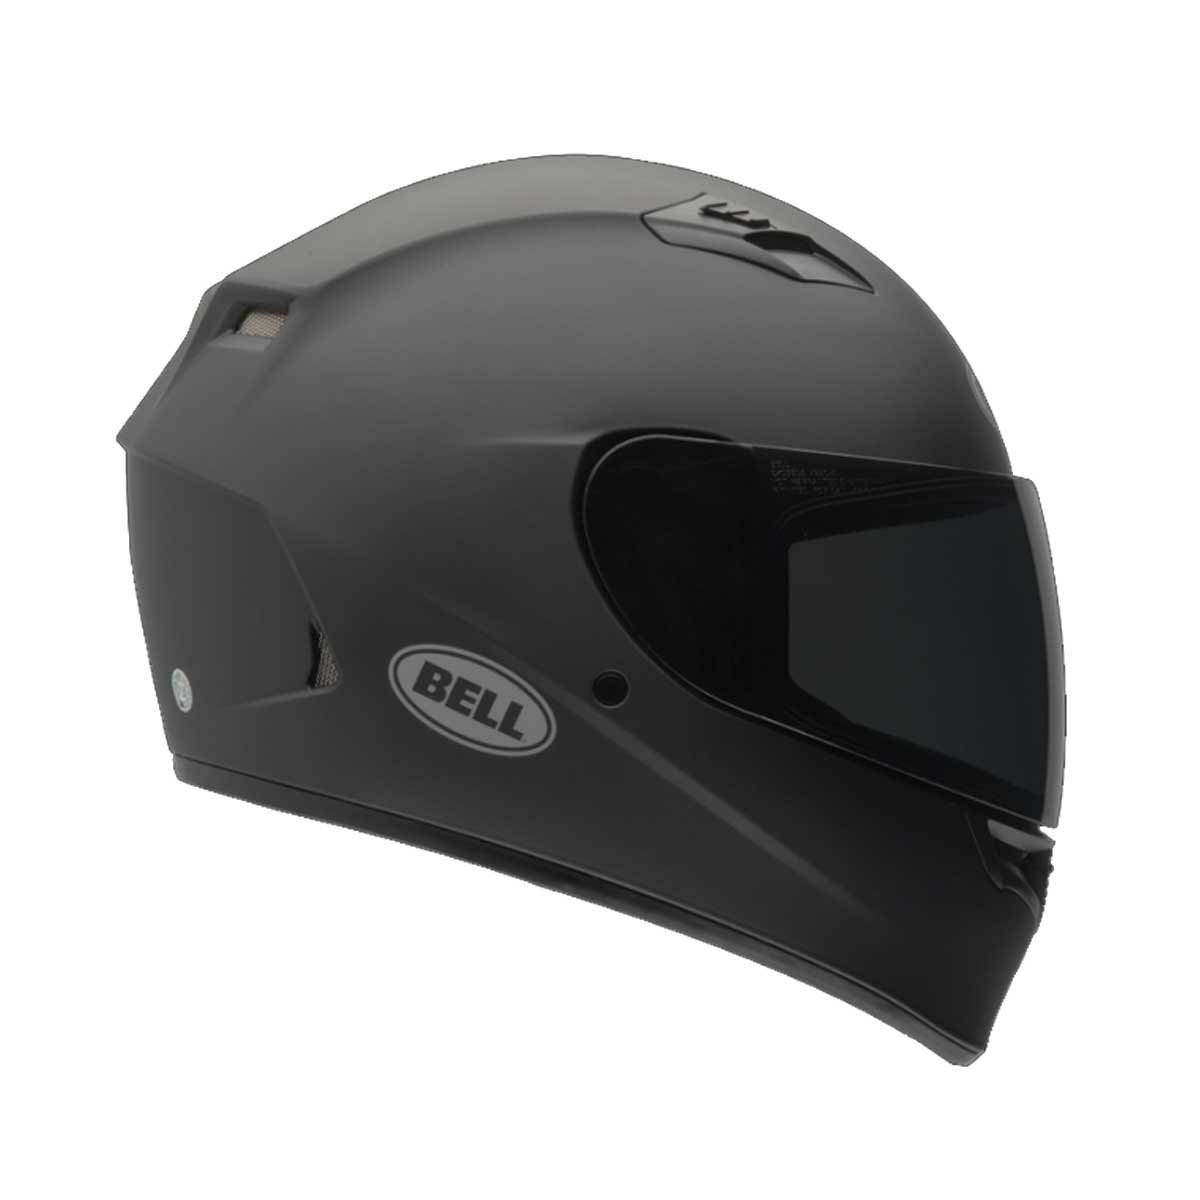 bell-solid-qualifier-street-bike-racing-helmet-ride